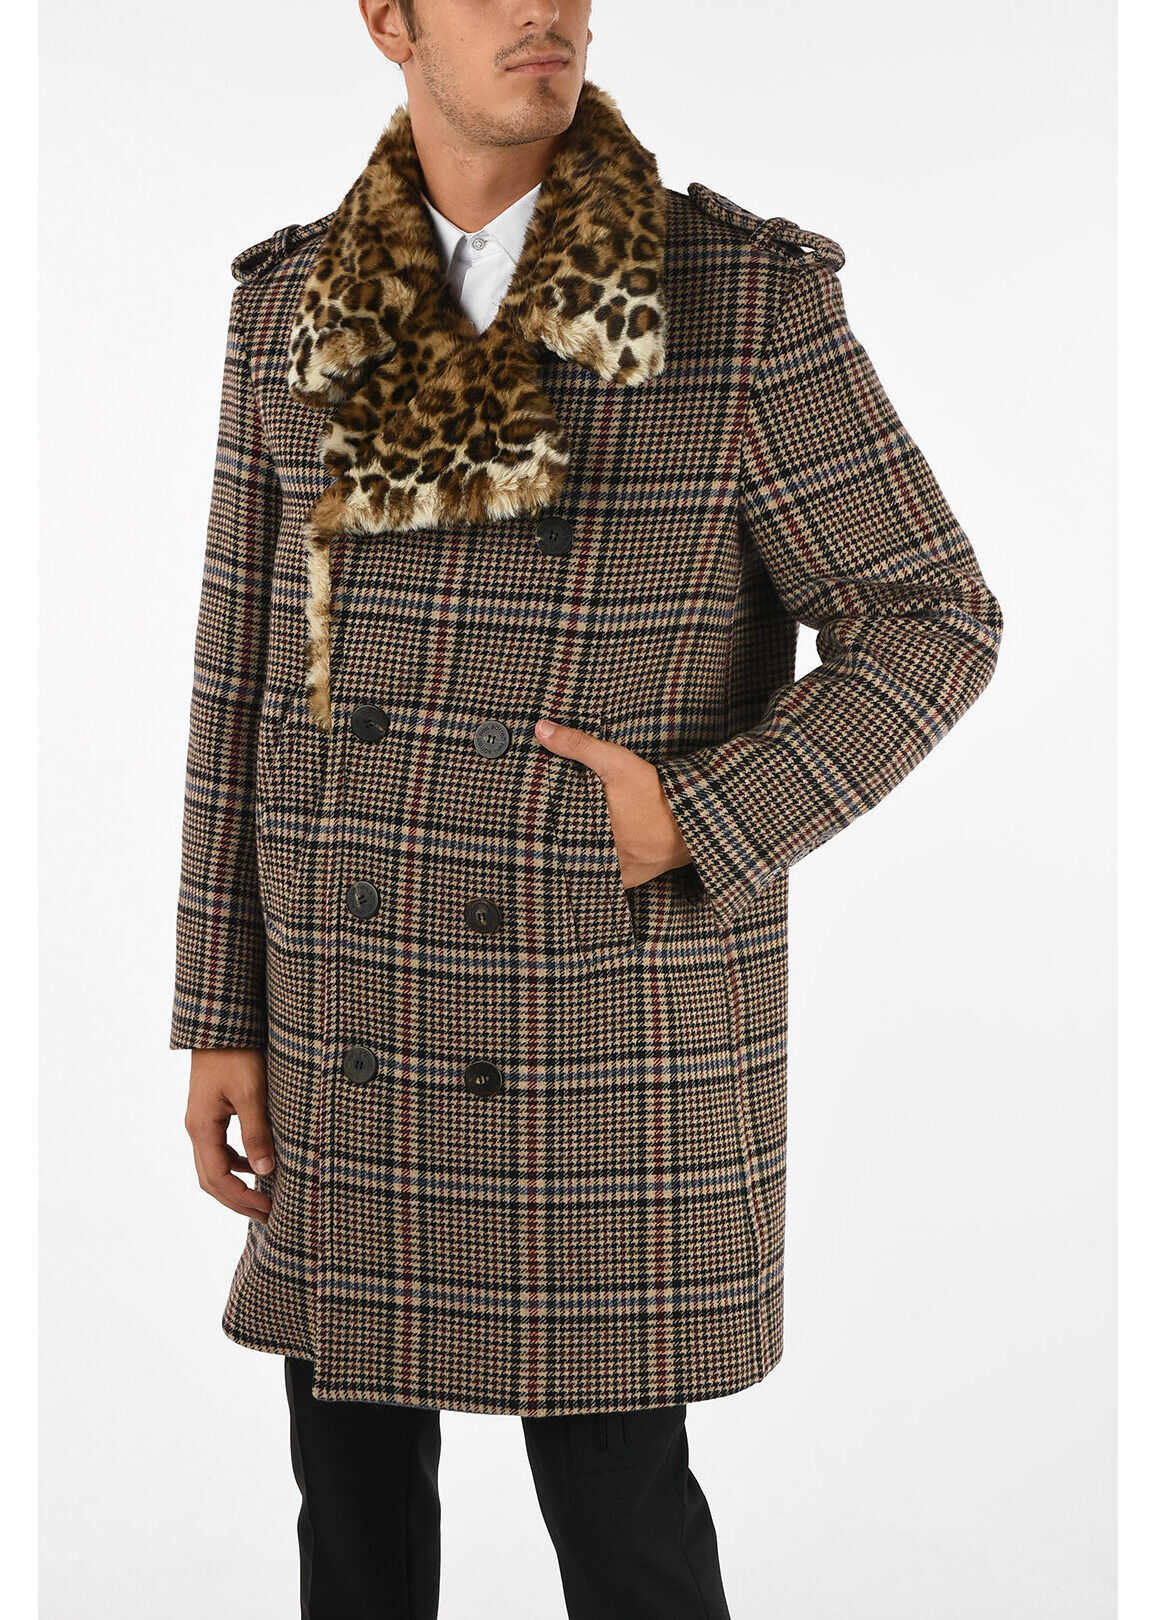 Neil Barrett Houndstooth Double Breasted Coat with Leopard Printed Faux F MULTICOLOR imagine